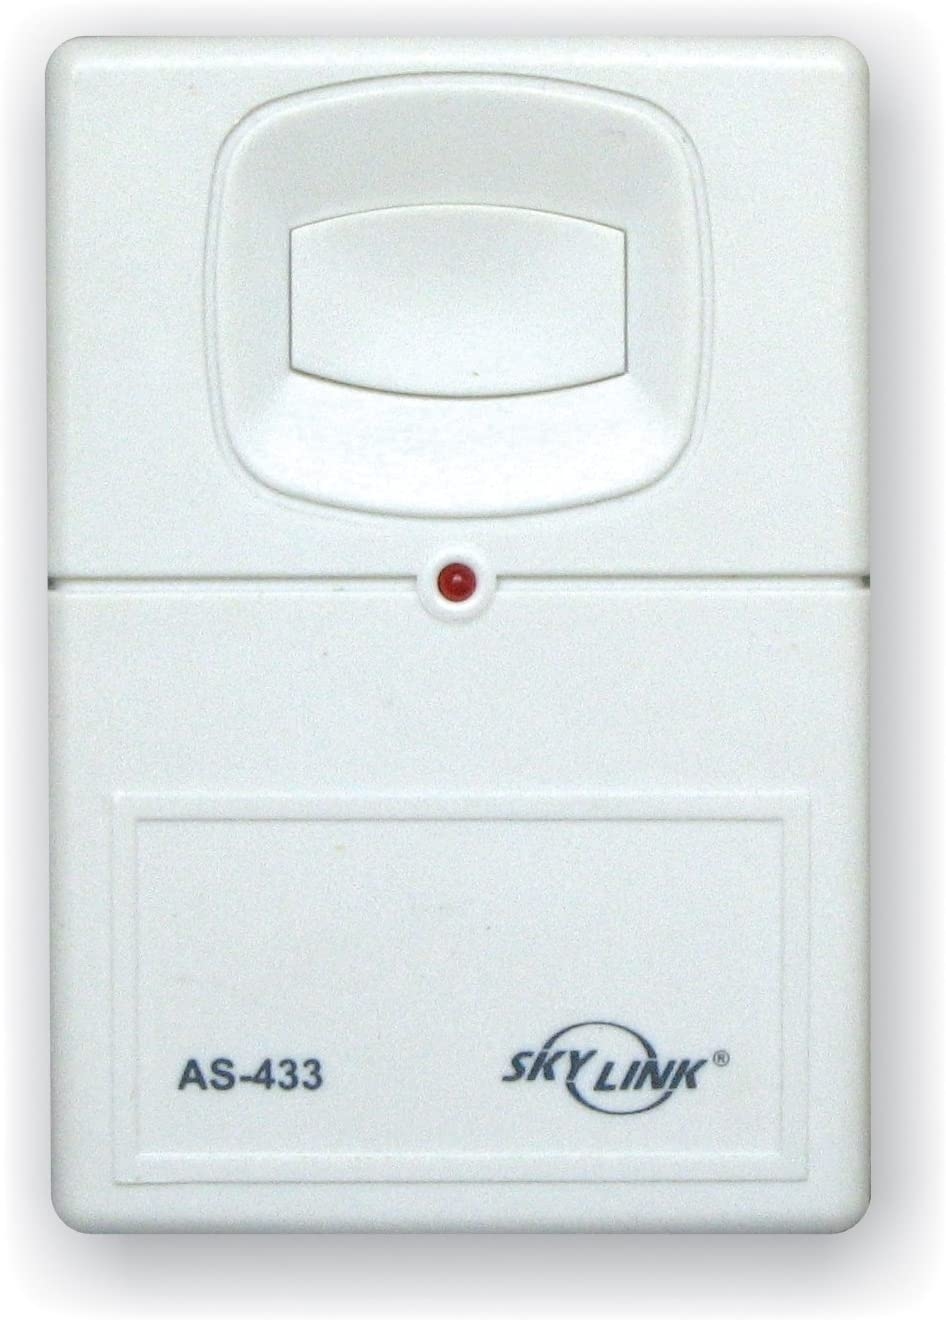 Easy to Install DIY Accessory for SC Series Systems Affordable Skylink AS-433W Audio Alarm Alert Security Detection Safety System for your Smoke or Carbon Monoxide Alarm